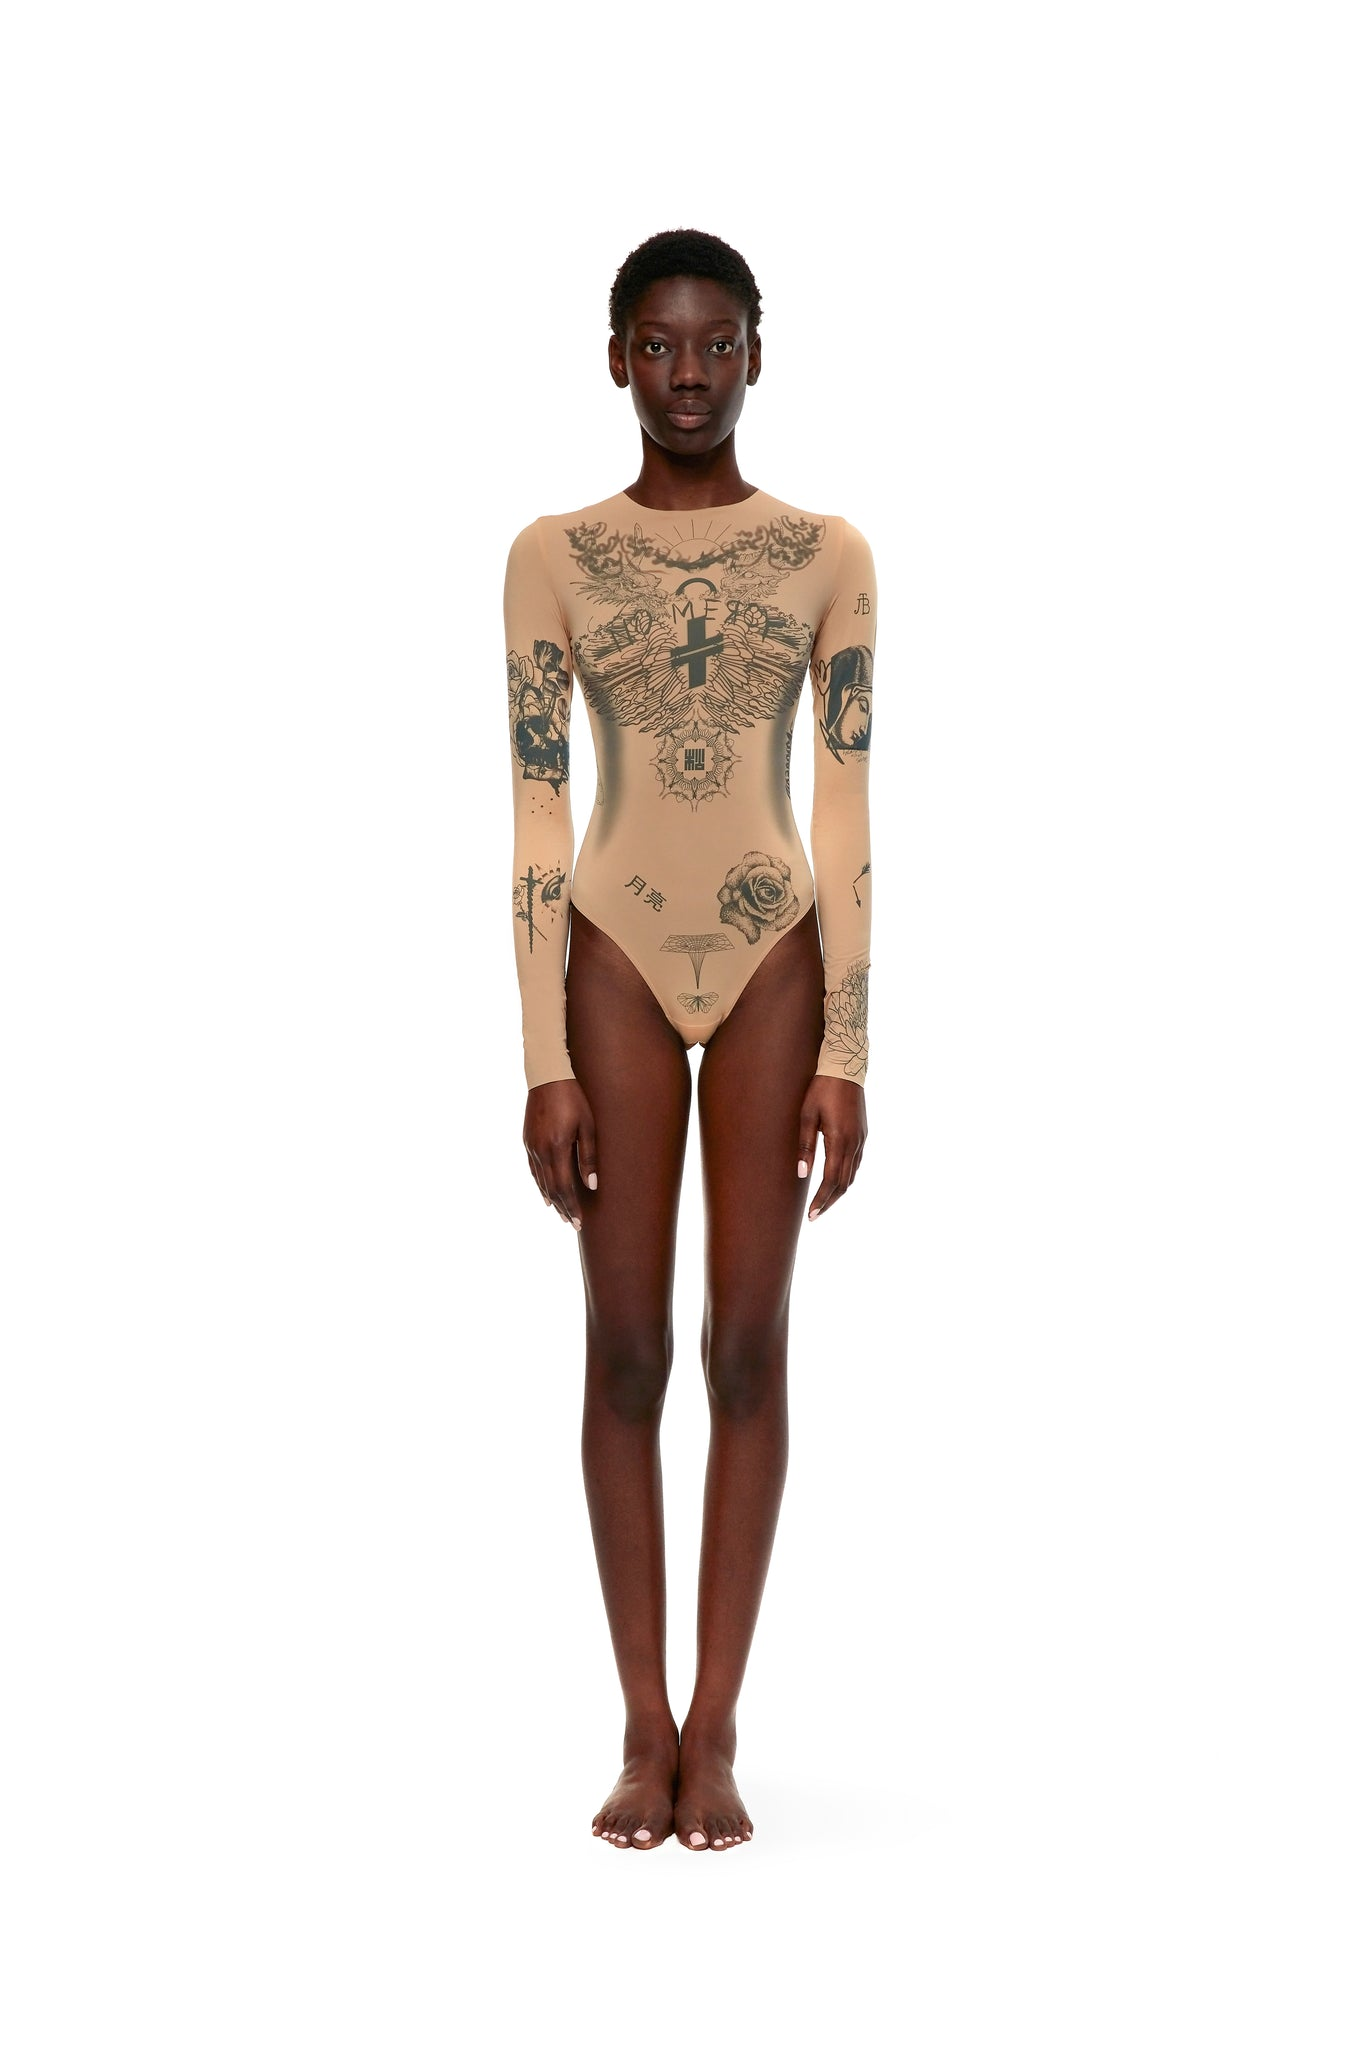 TANNED BEIGE BODYSUIT CHRISTIANITY